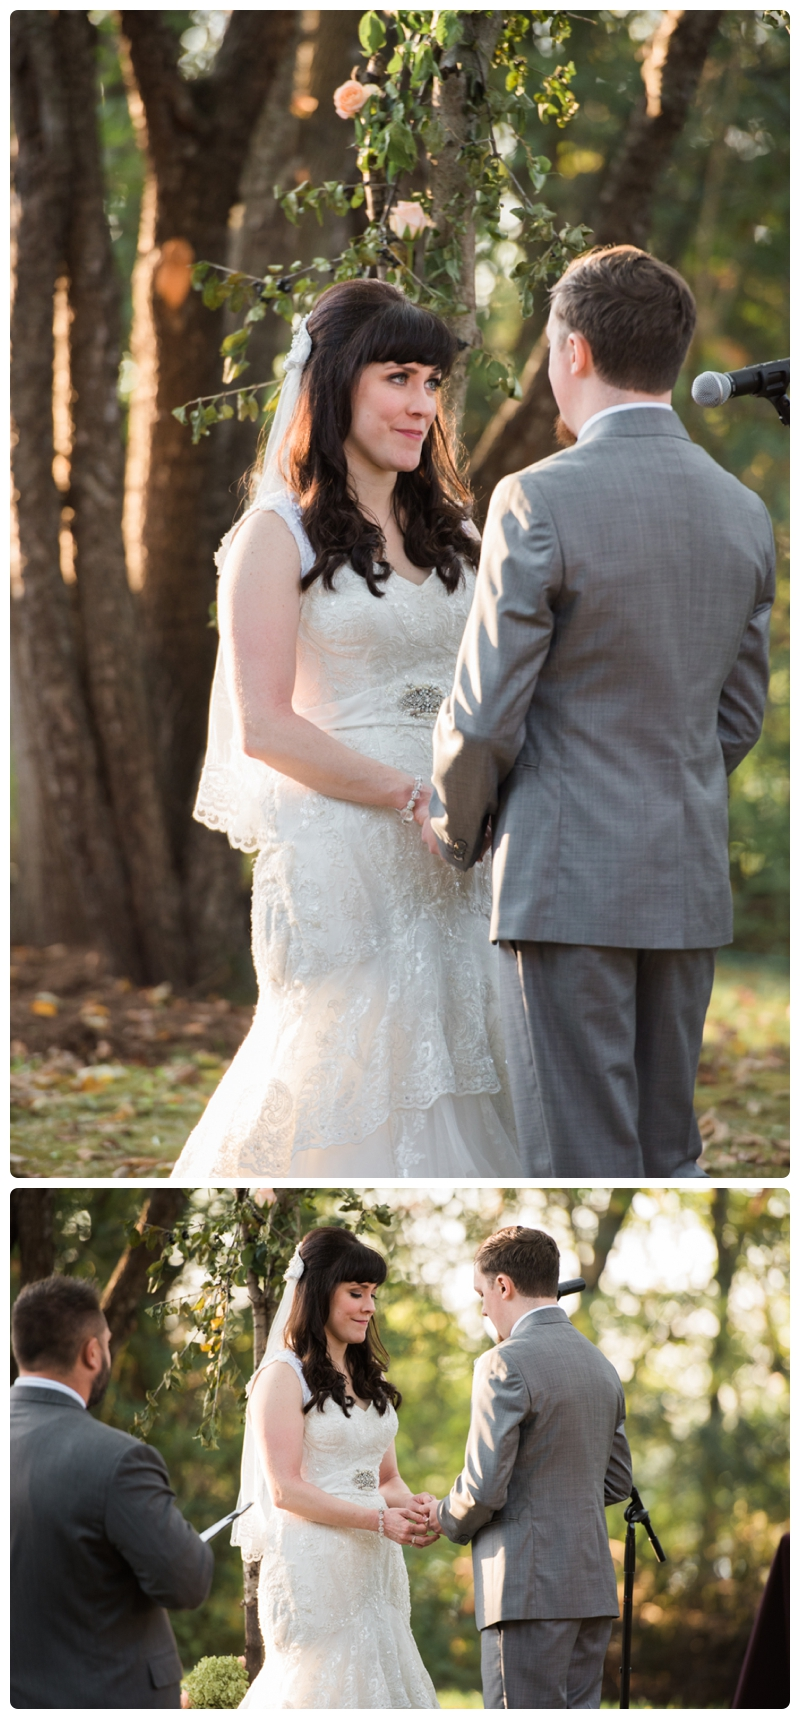 Backyard forest wedding in the Chicago suburbs by Rachael Foster Photography_0050.jpg